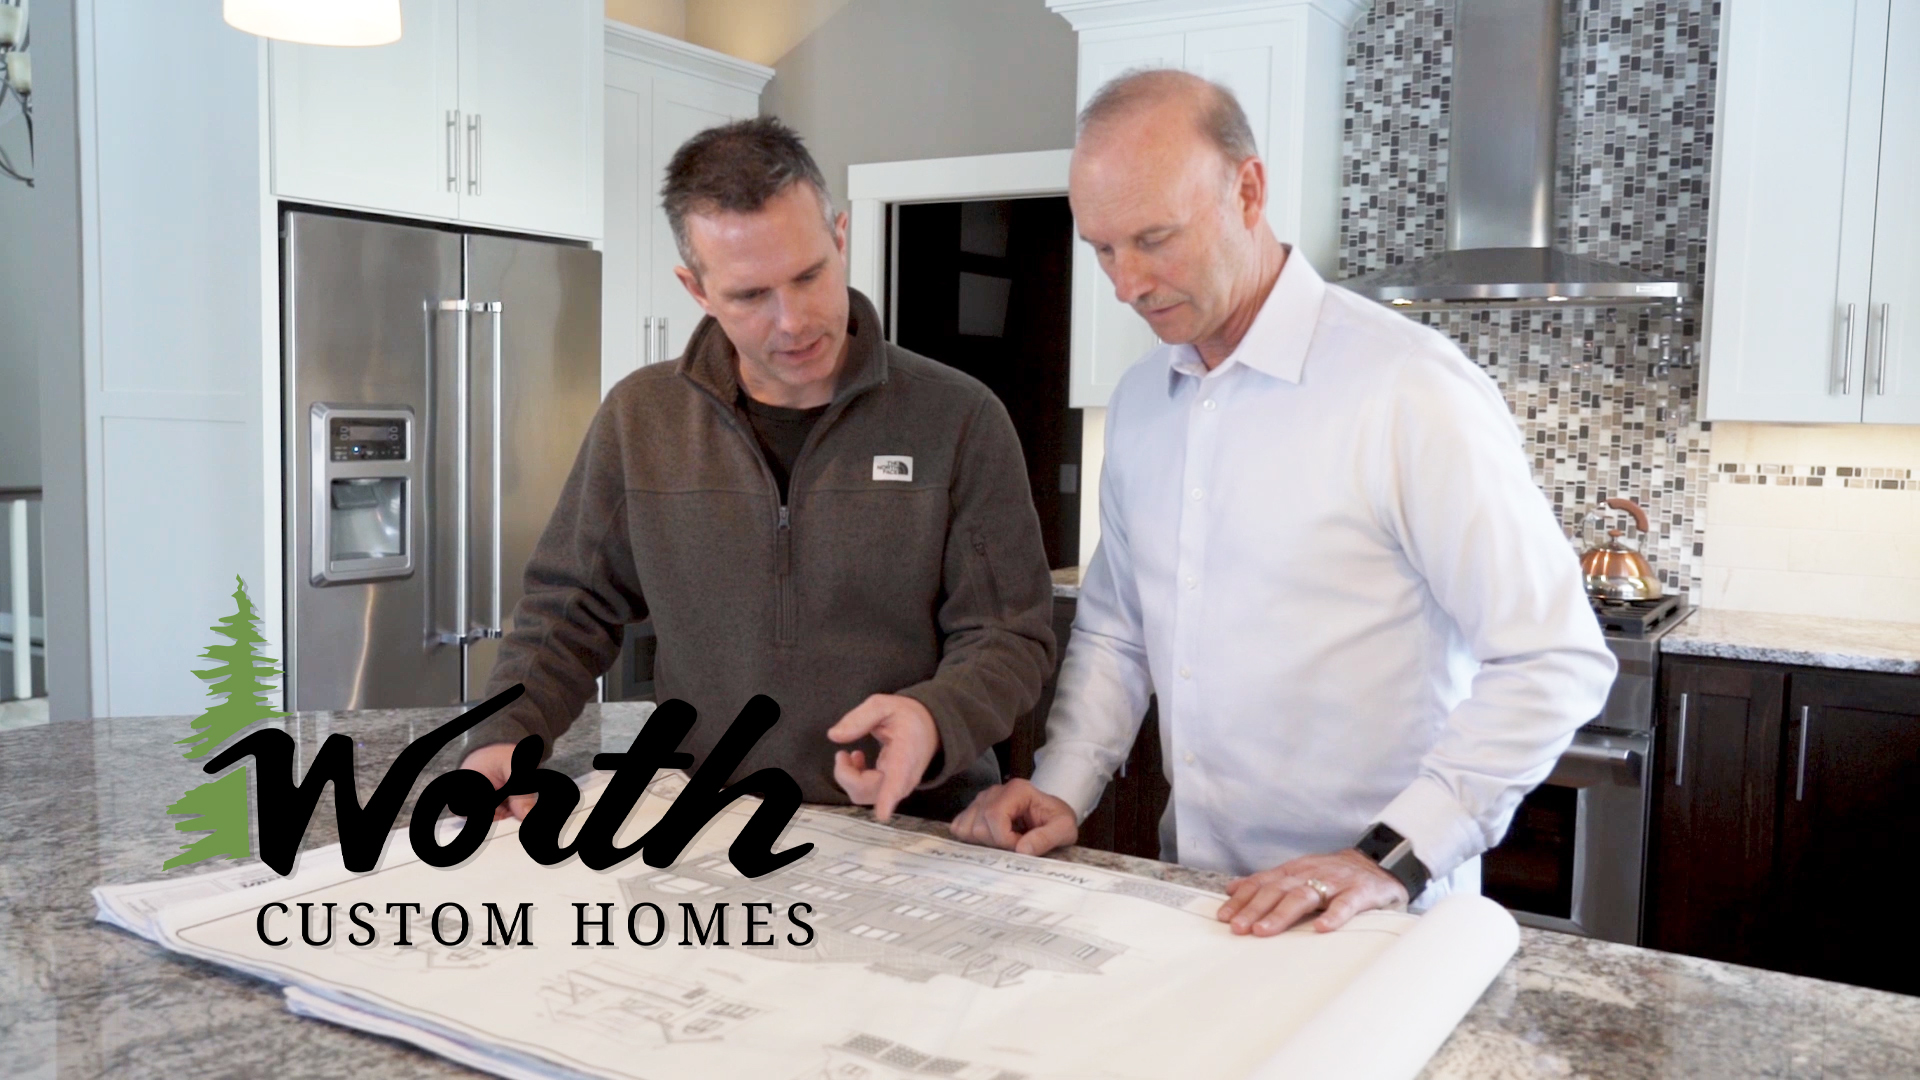 Working with Worth Custom Homes